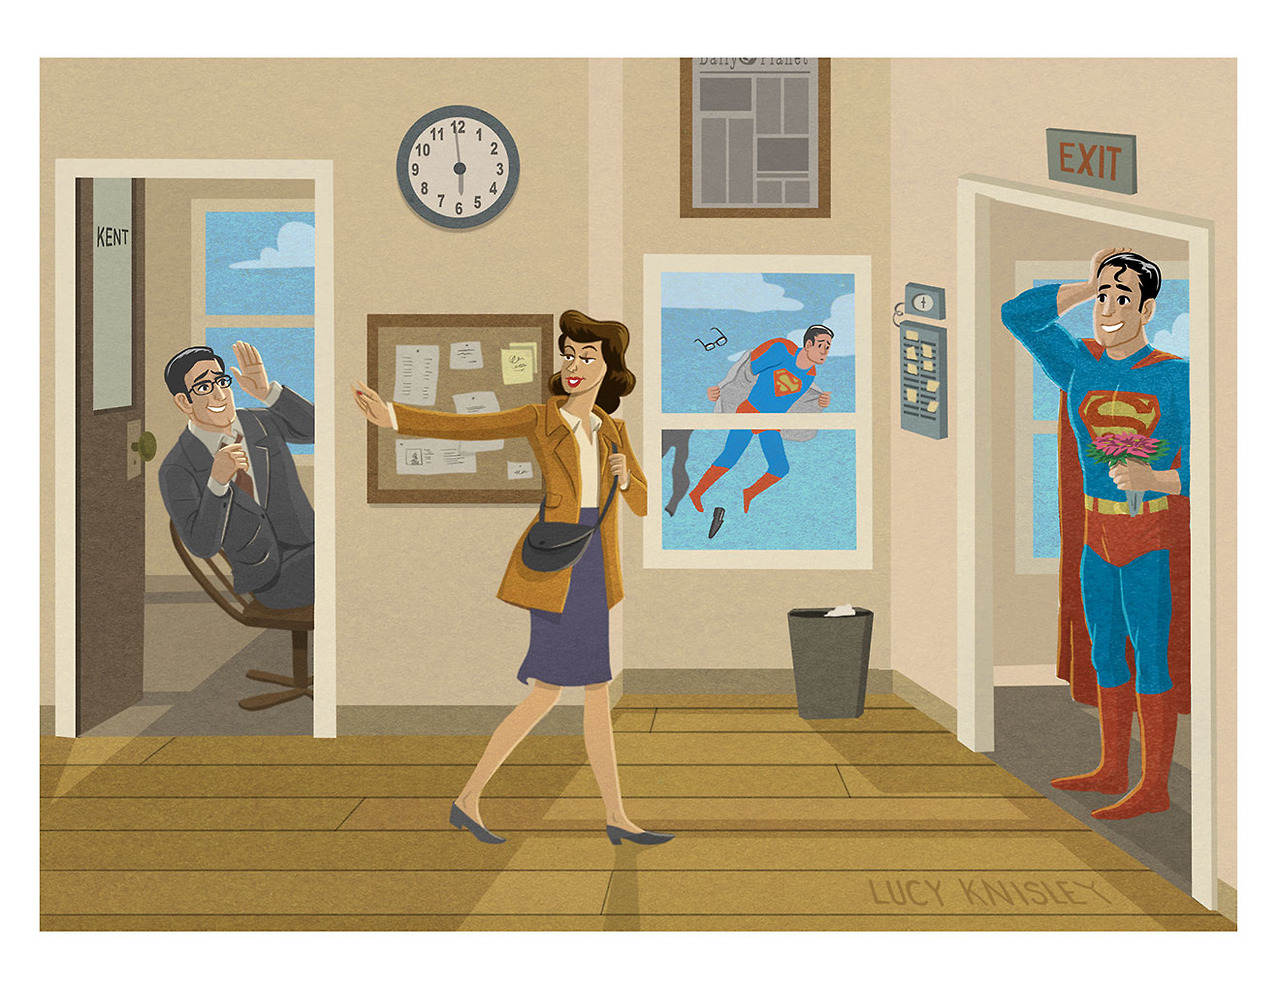 I was just thinkin' about superman recently. And how awesome Lois Lane is. She's too much woman for TWO identities.